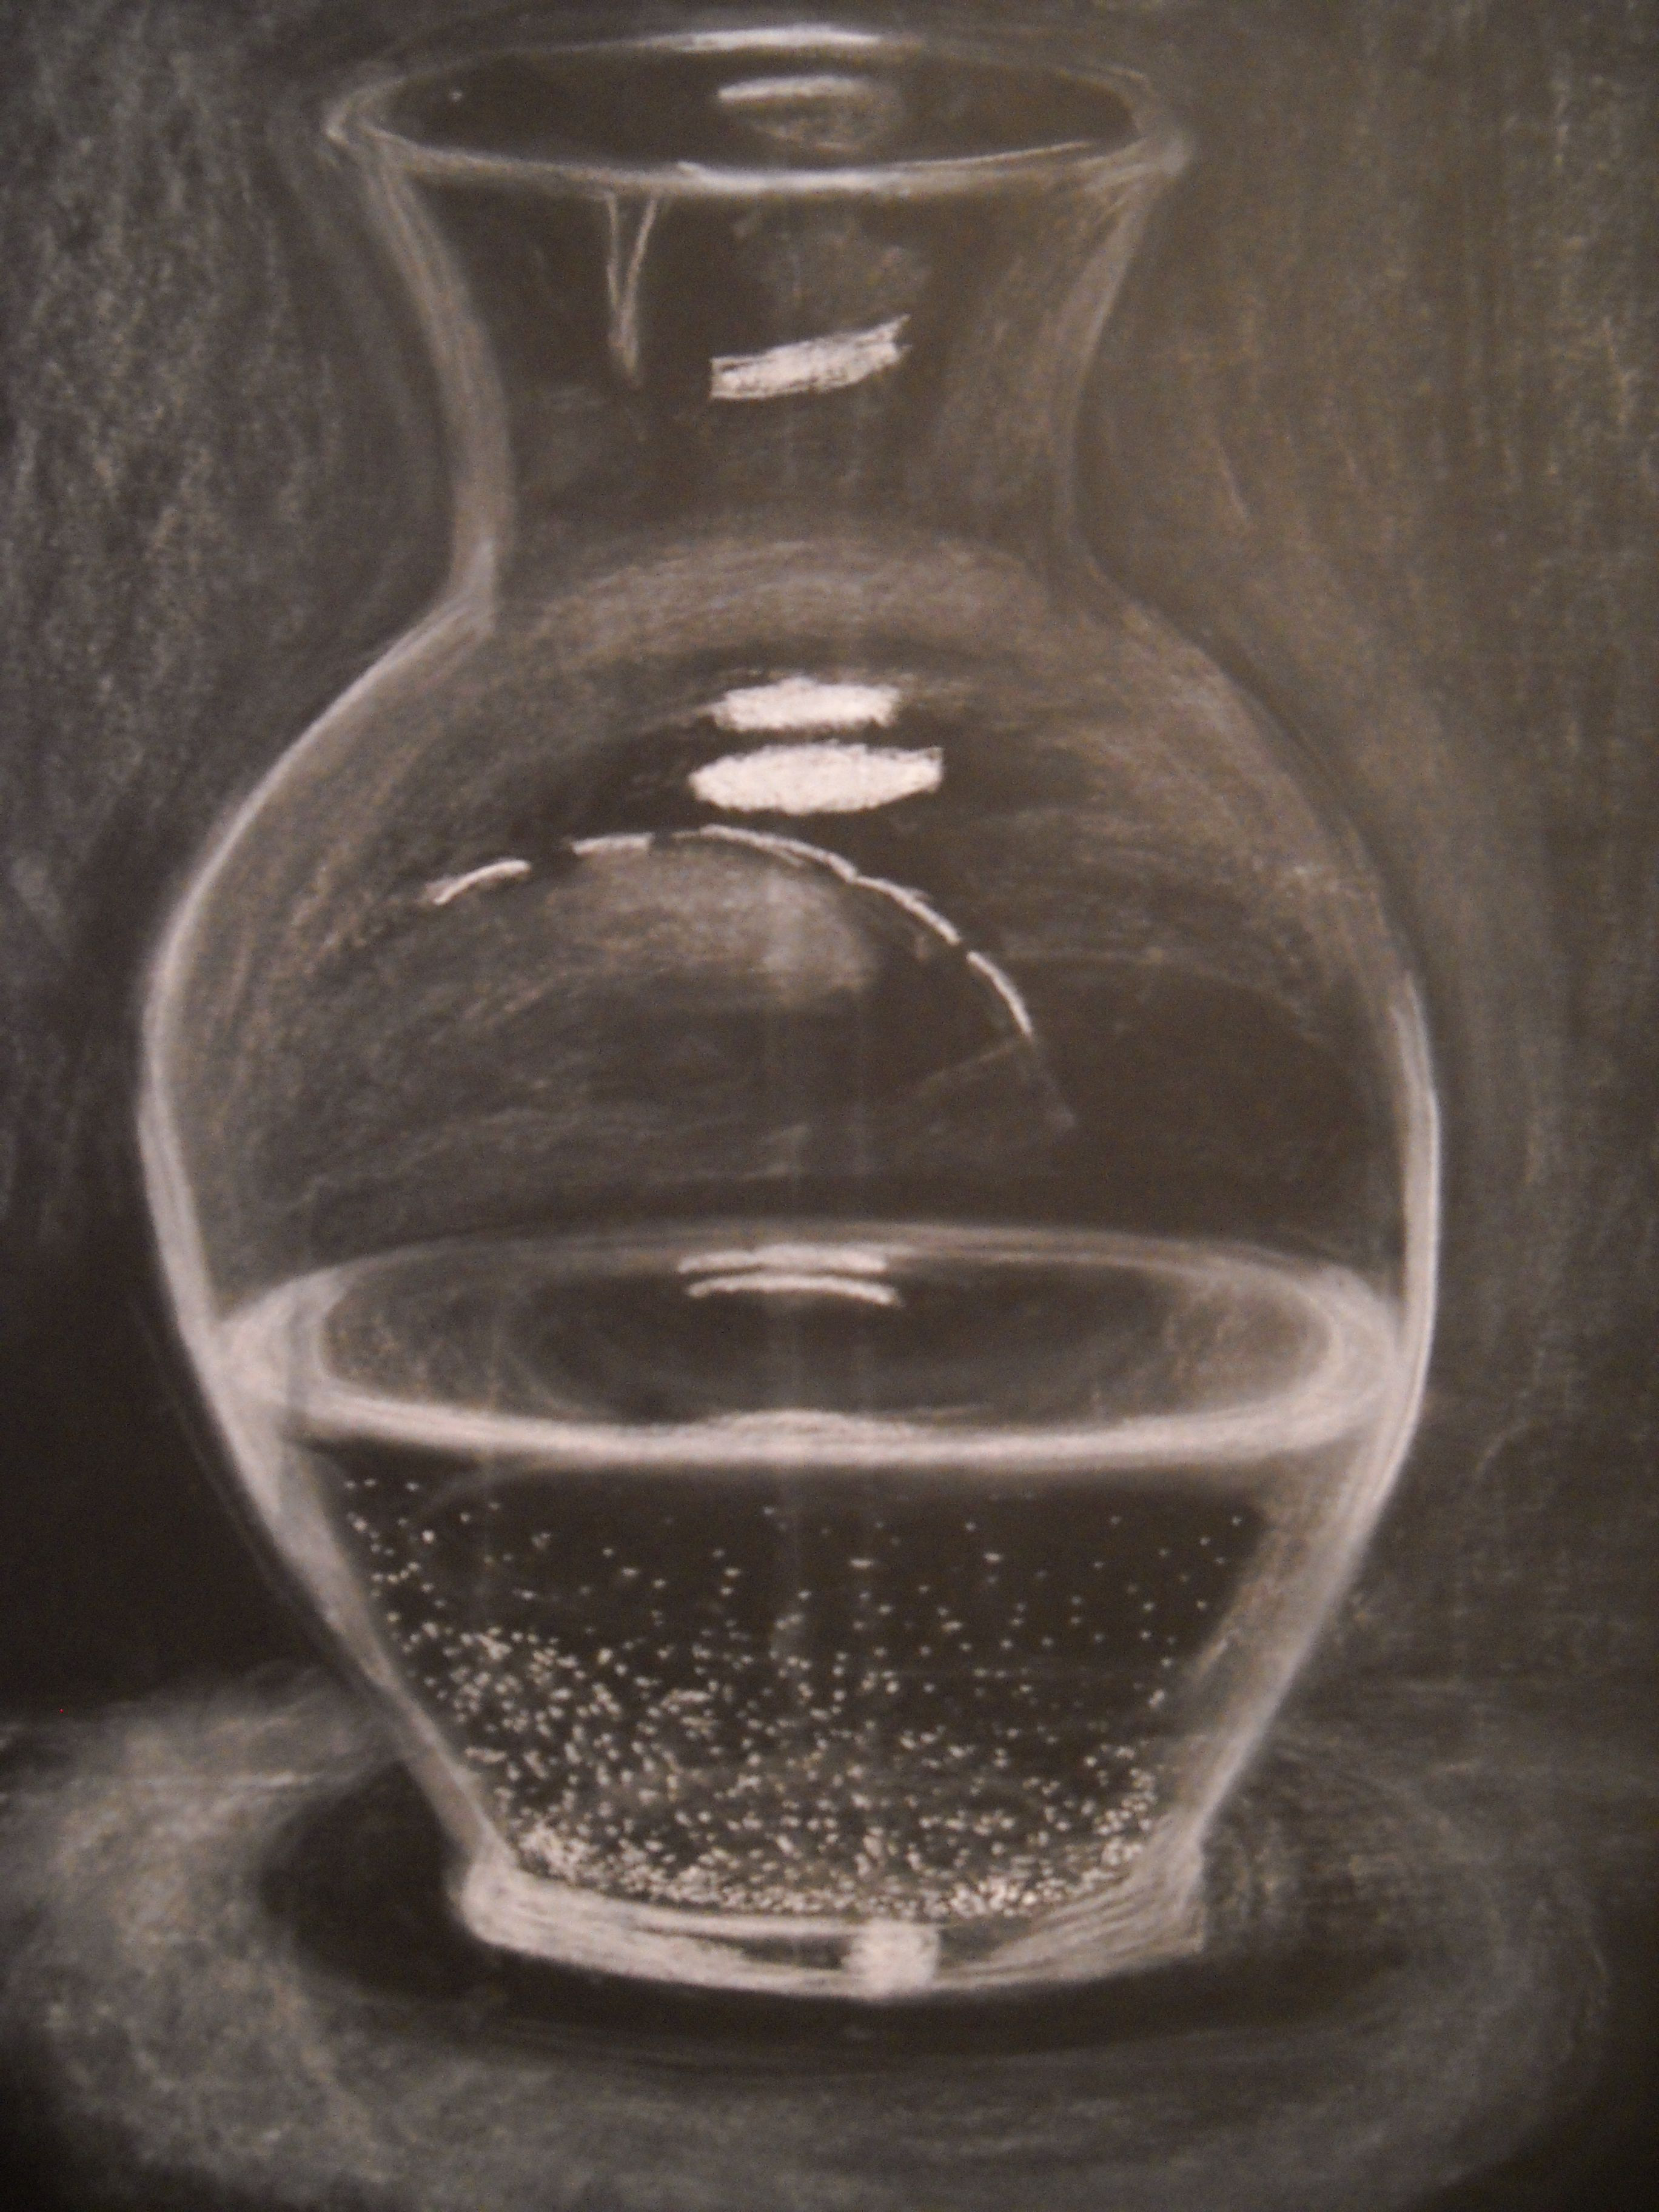 Blush Pink Glass Vase Of Glass Vase Filled with Water Done In White Chalk On Black Drawing In Glass Vase Filled with Water Done In White Chalk On Black Drawing Paper